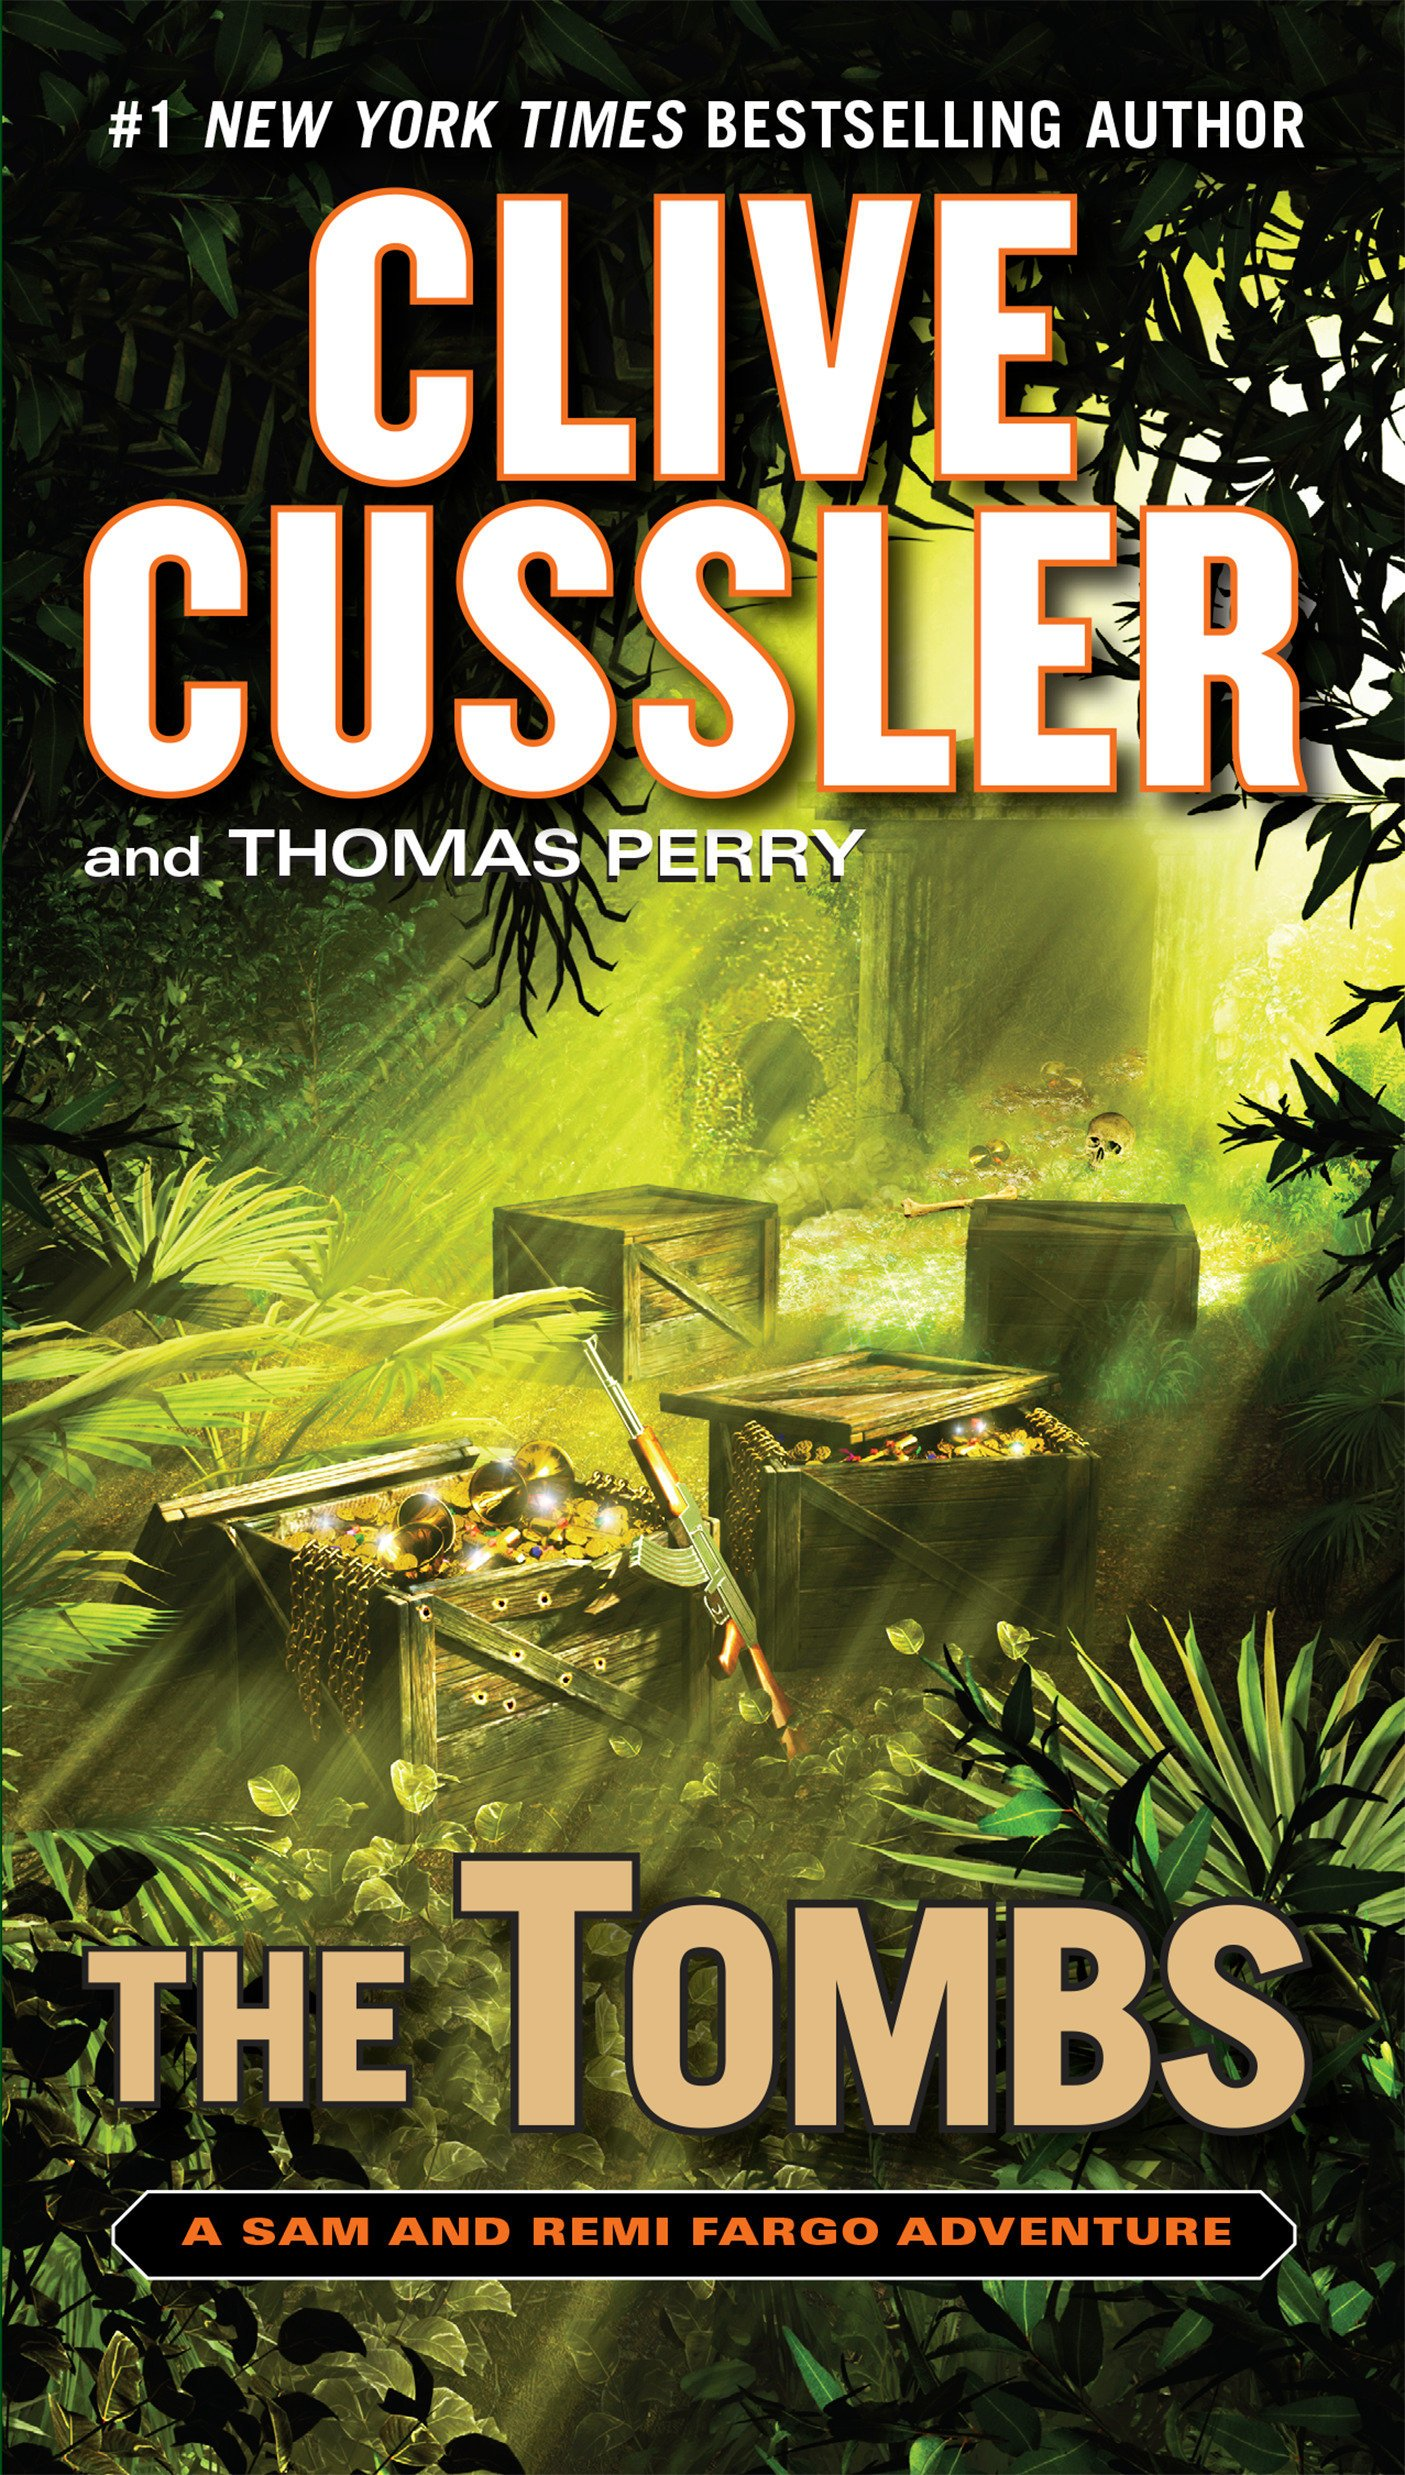 Amazon.com: The Tombs (A Sam and Remi Fargo Adventure) (9780425265079):  Clive Cussler, Thomas Perry: Books